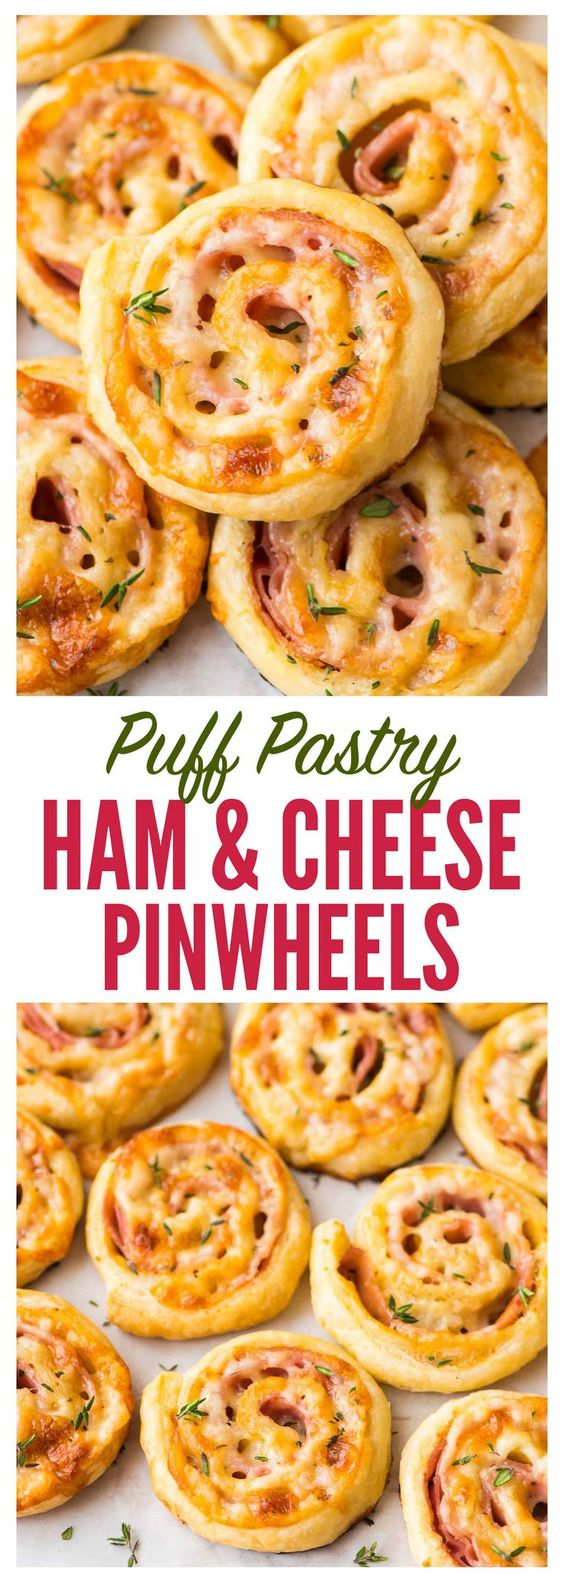 Ham and Cheese Pinwheels #appetizer #ham #cheese #pinwheels